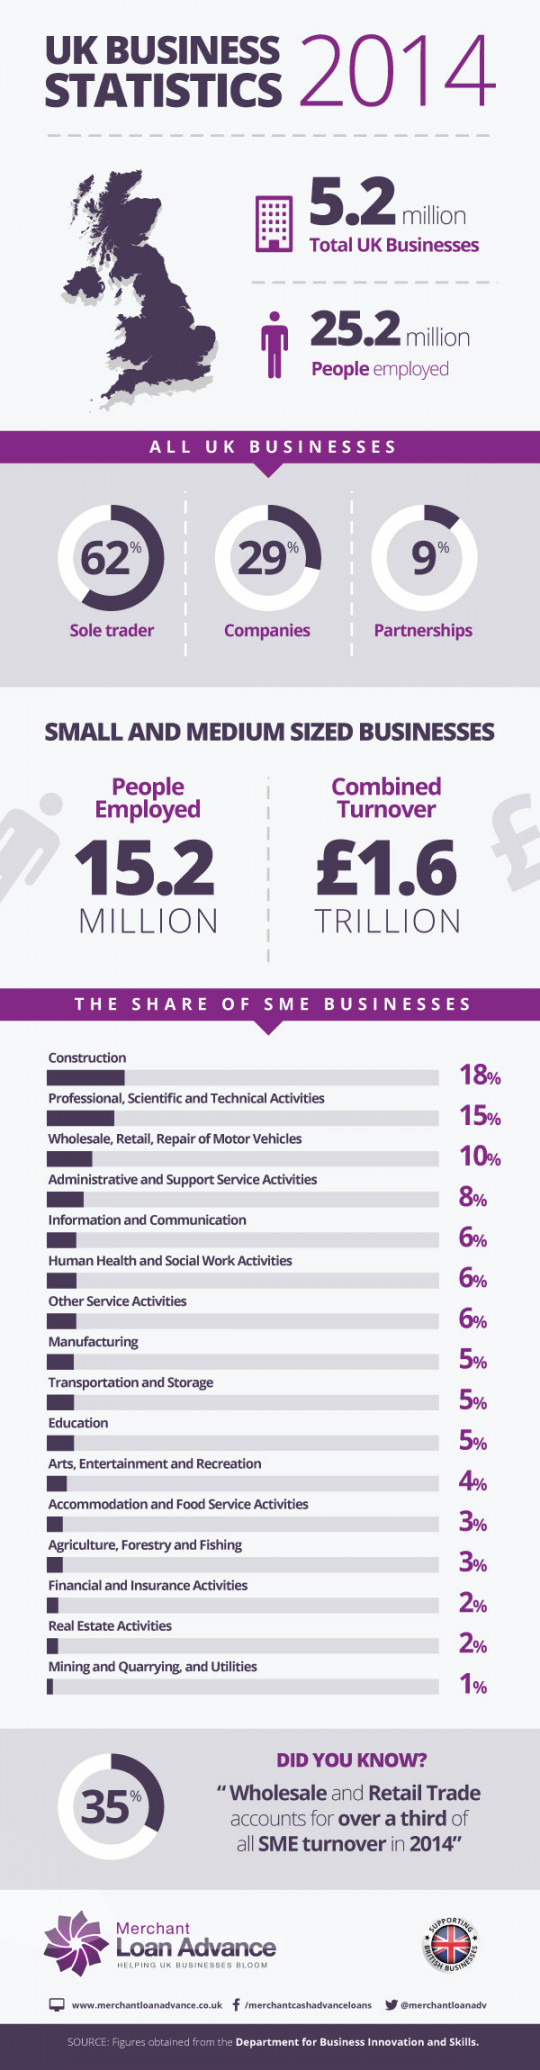 UK Business Statistics